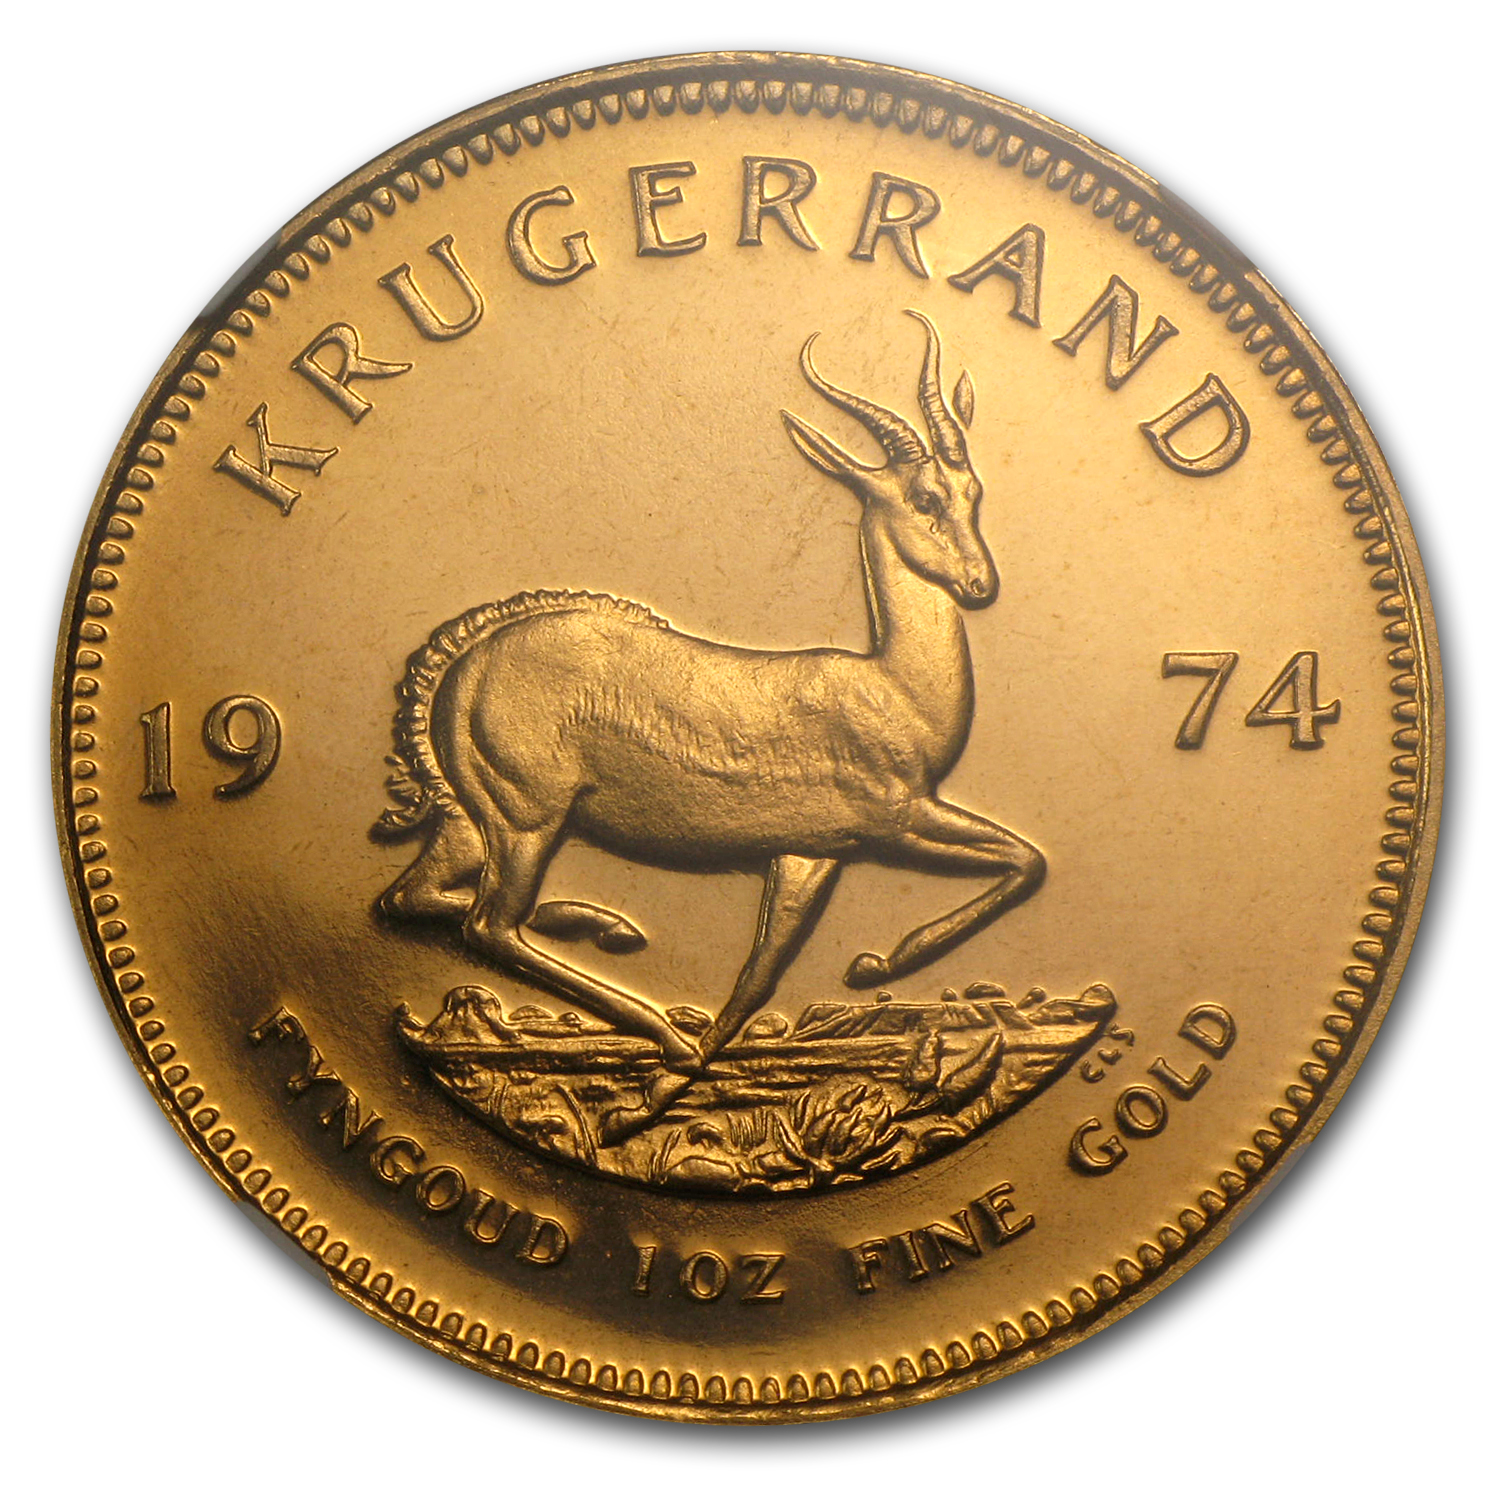 1974 1 oz Gold South African Krugerrand PF-67 UCAM NGC